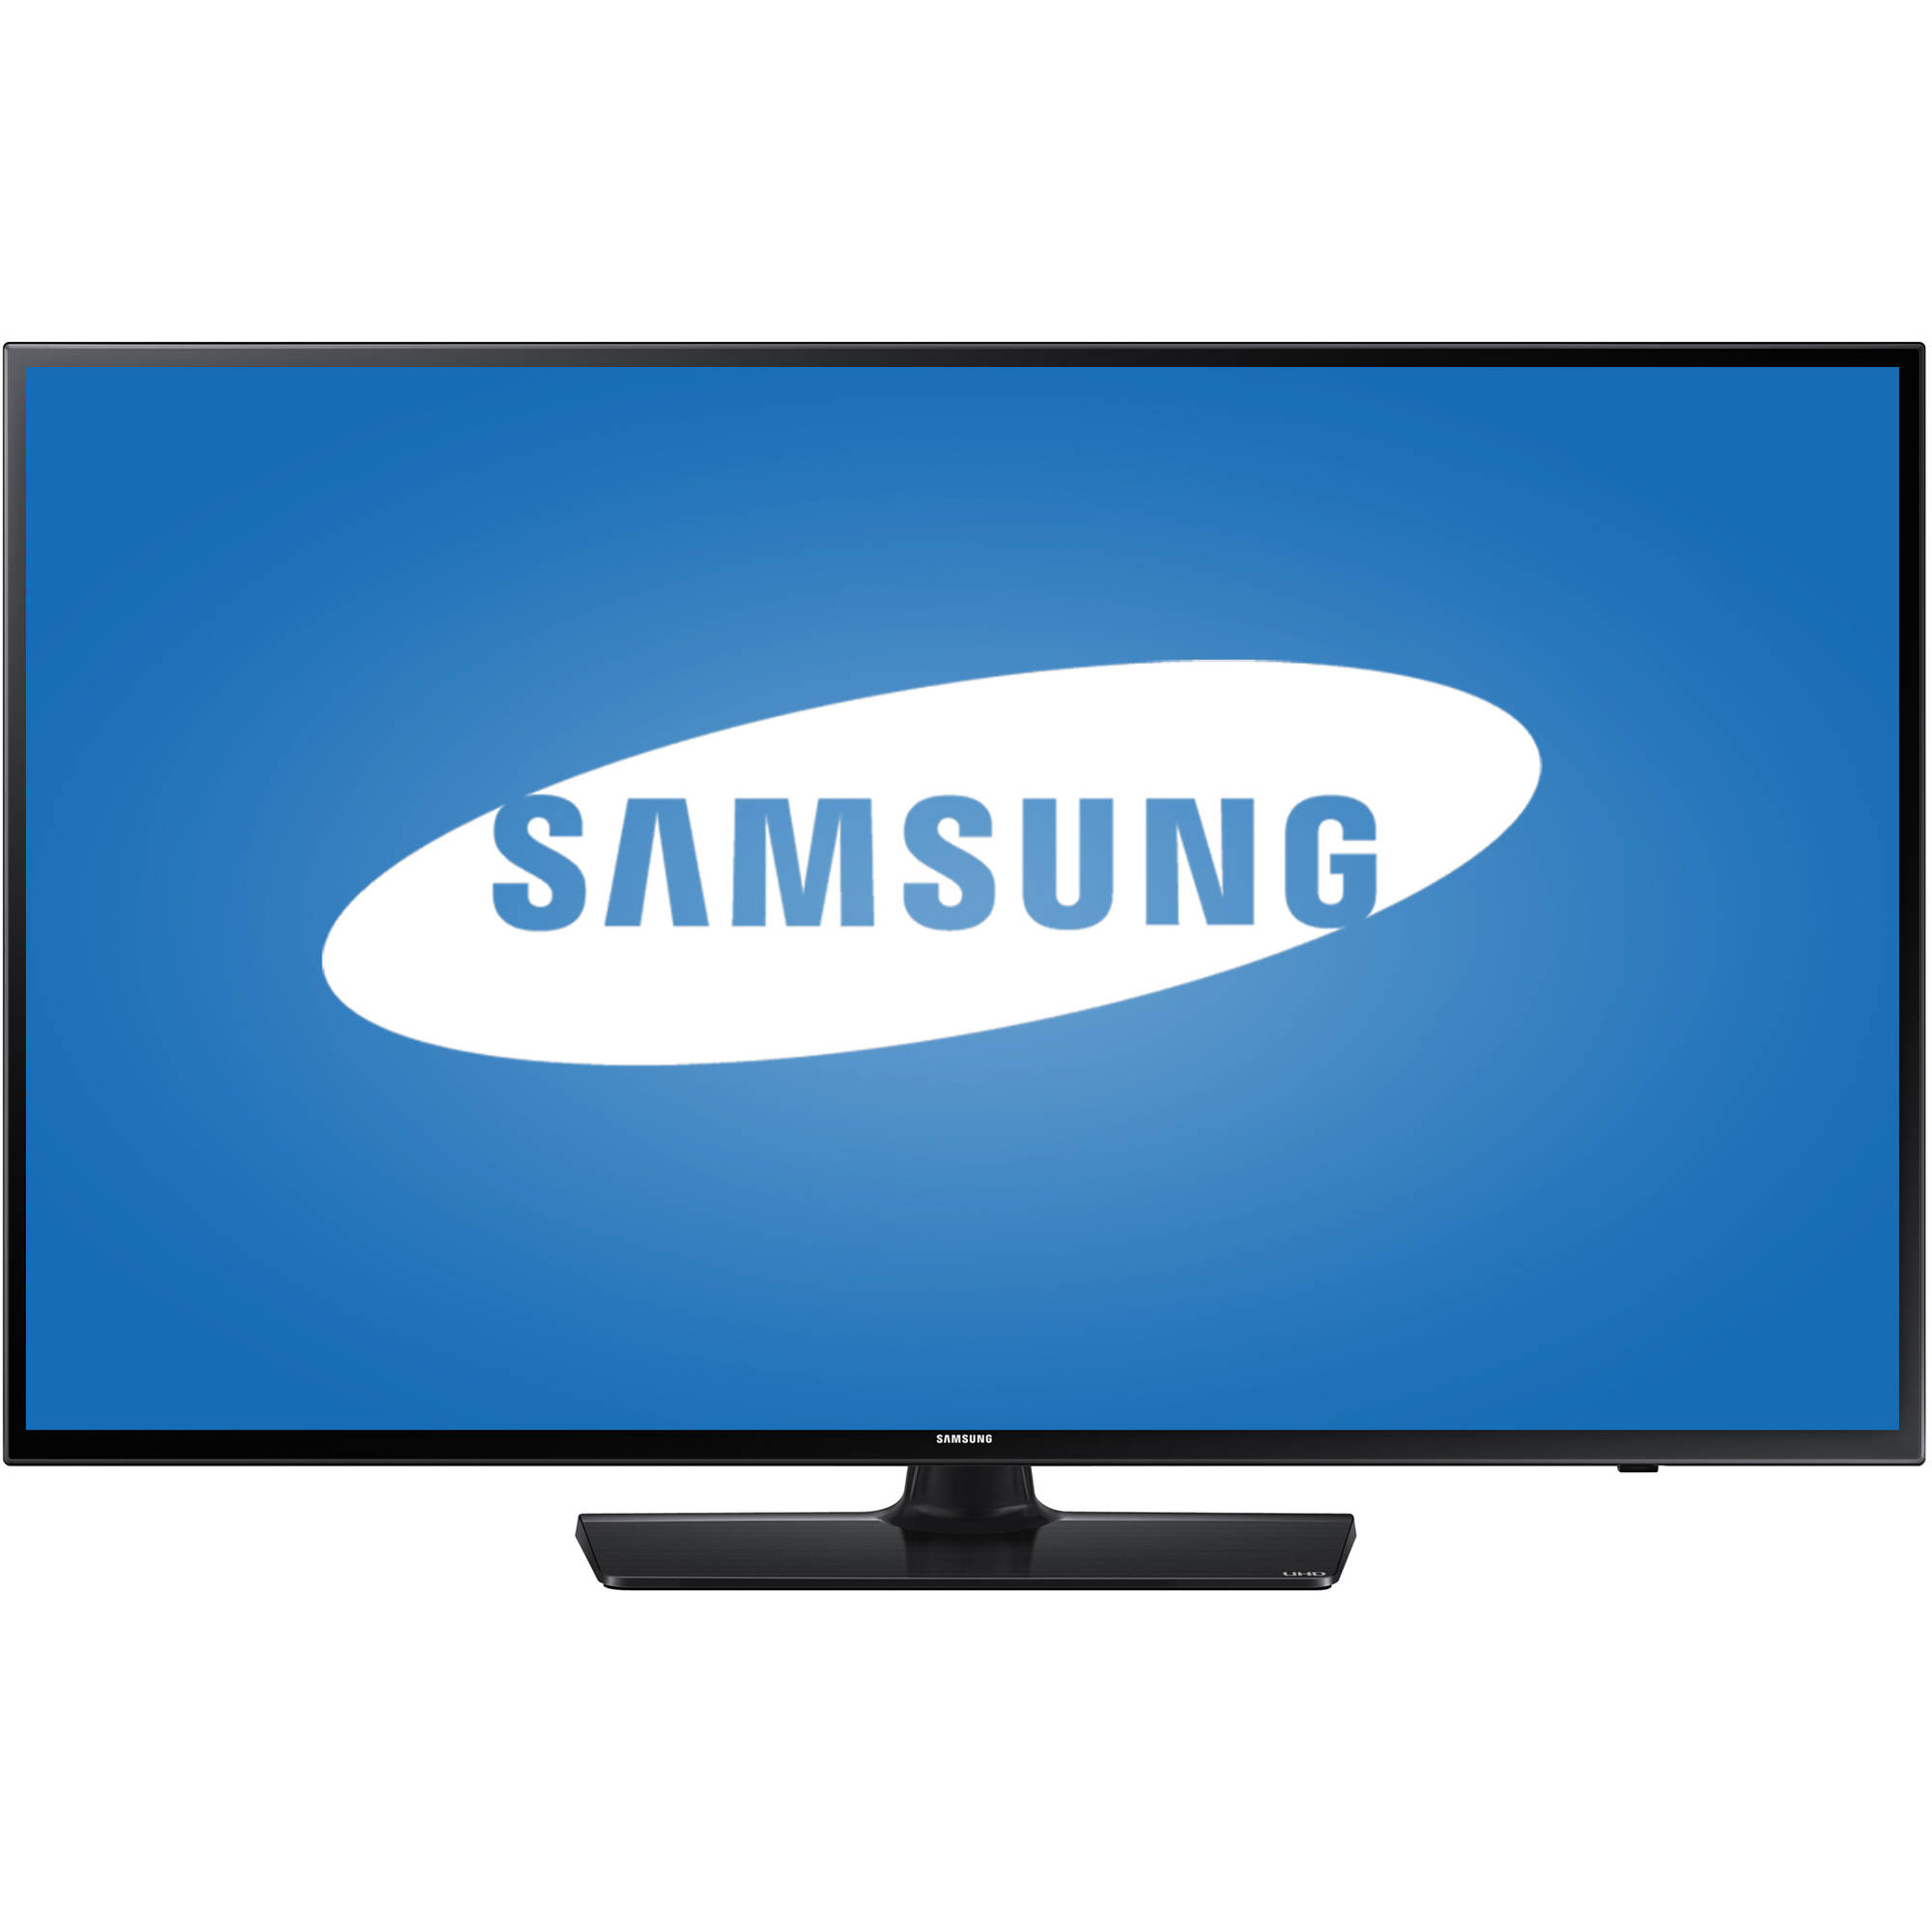 "SAMSUNG 55"" 6400 Series - 4K Ultra HD Smart LED TV - 2160p, 120MR (Model#: UN55JU6400)"